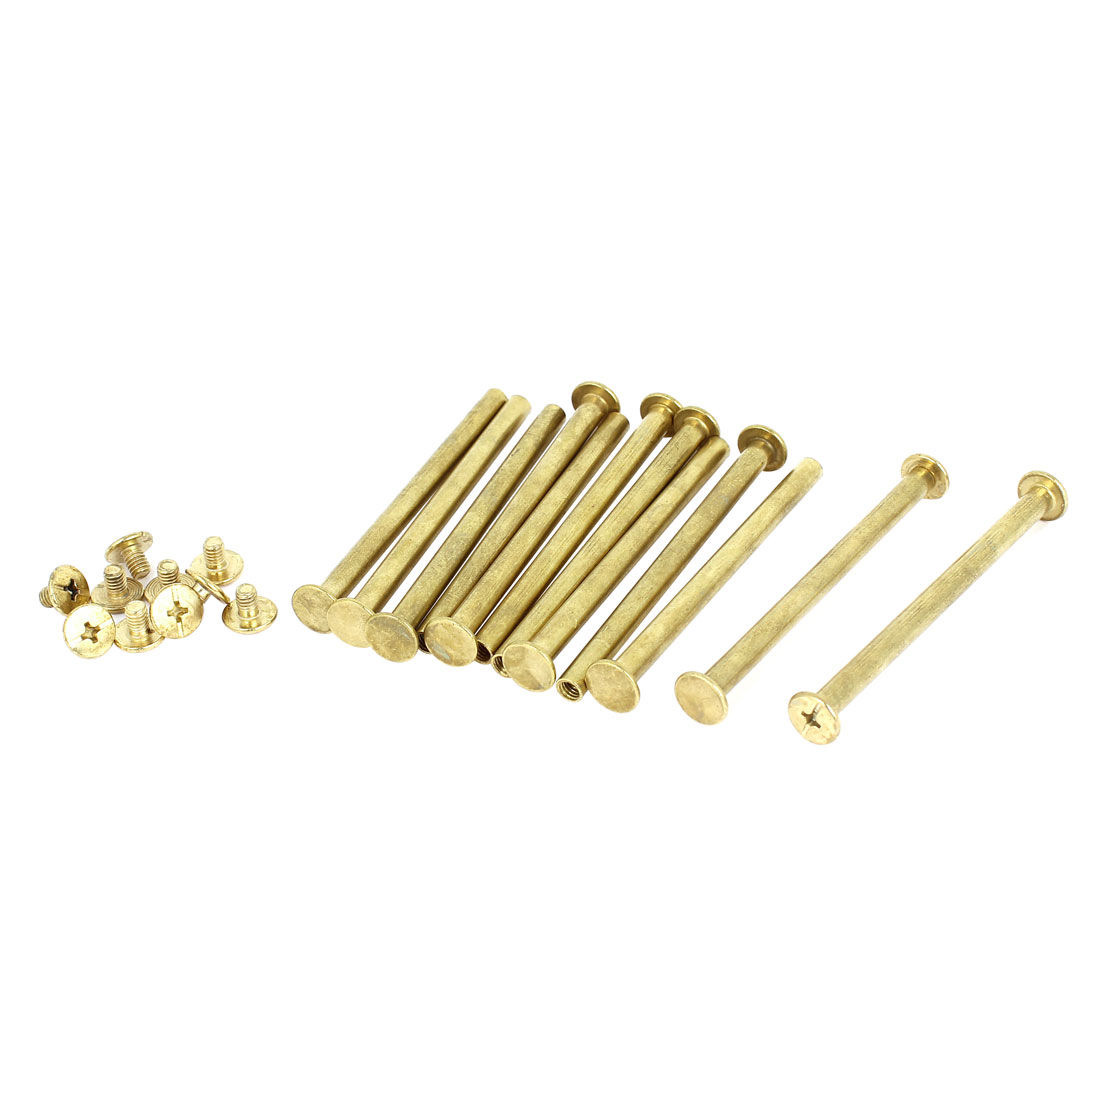 Brass Plated 5x70mm Binding Chicago Screw Post 12pcs for Leather Scrapbook